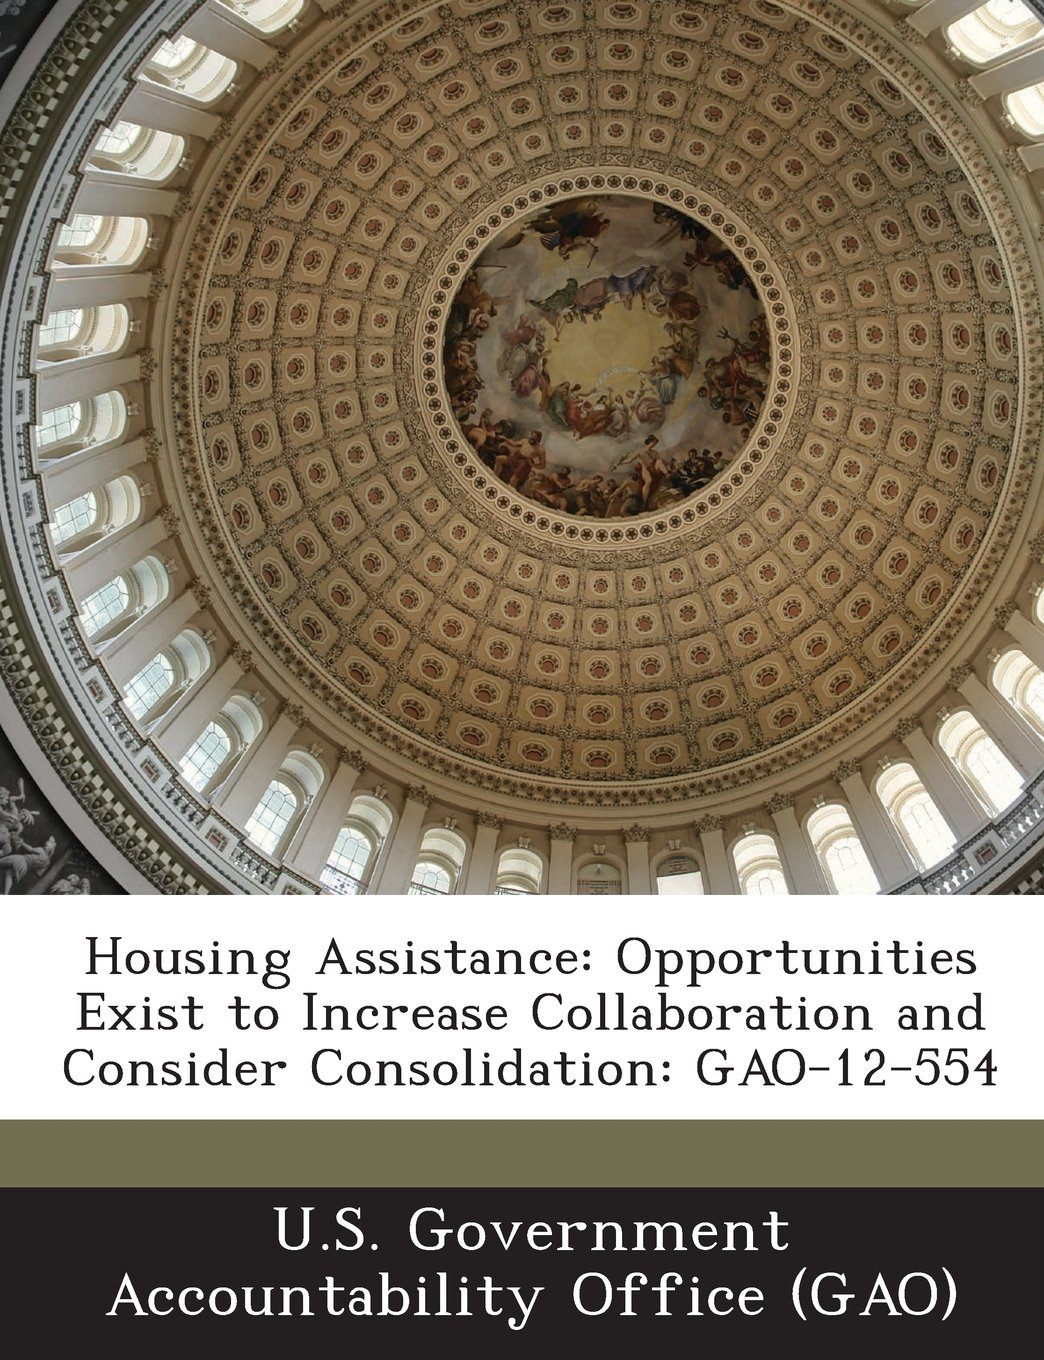 Housing Assistance: Opportunities Exist to Increase Collaboration and Consider Consolidation: GAO-12-554 ebook